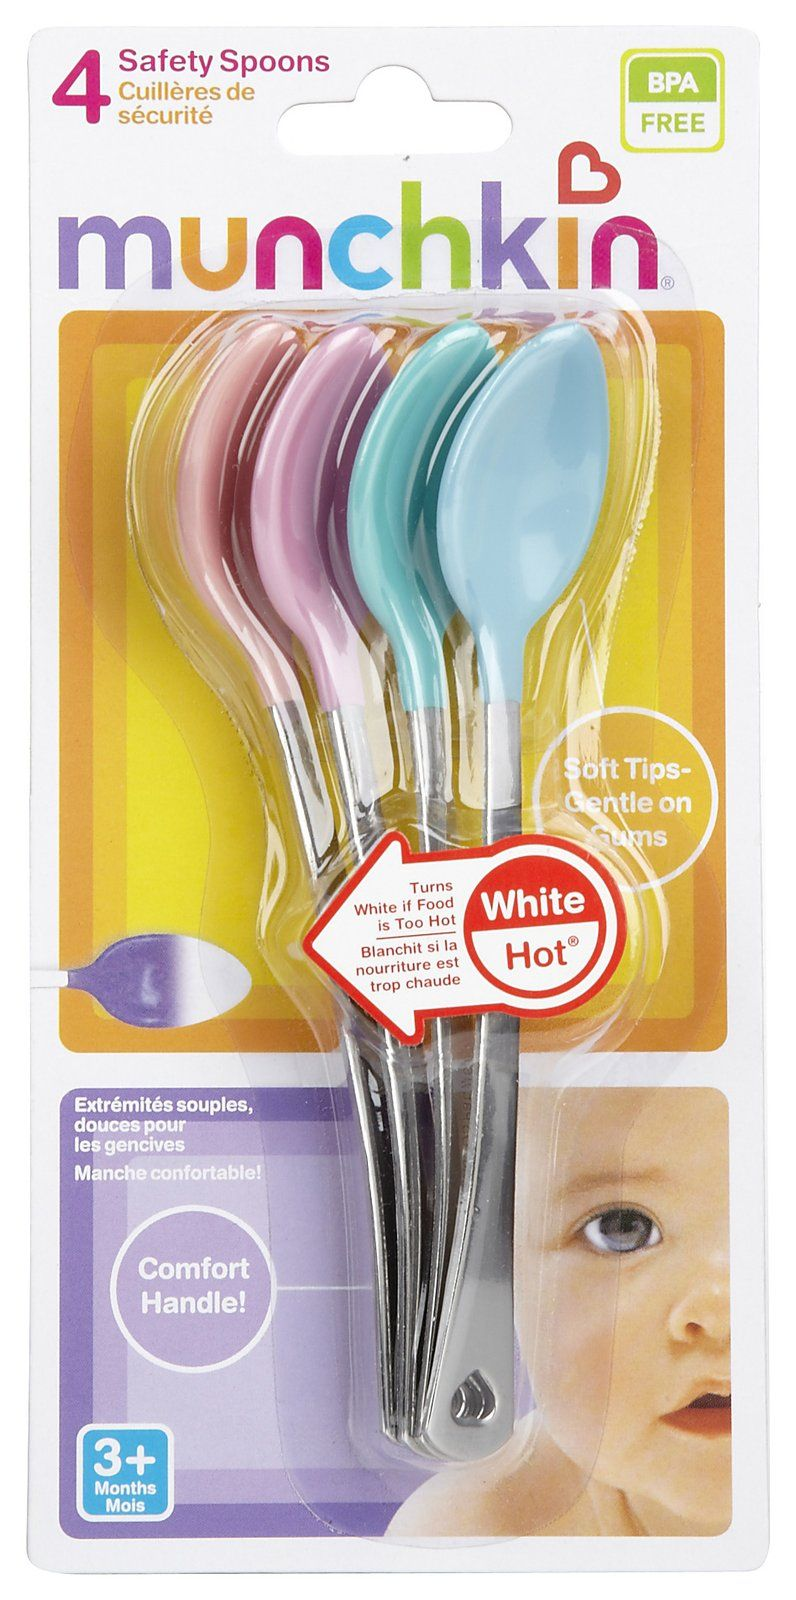 The spoons come with a built-in heat sensor, which turns white at 110F/43.3 C, indicating that the food is too hot for kids.